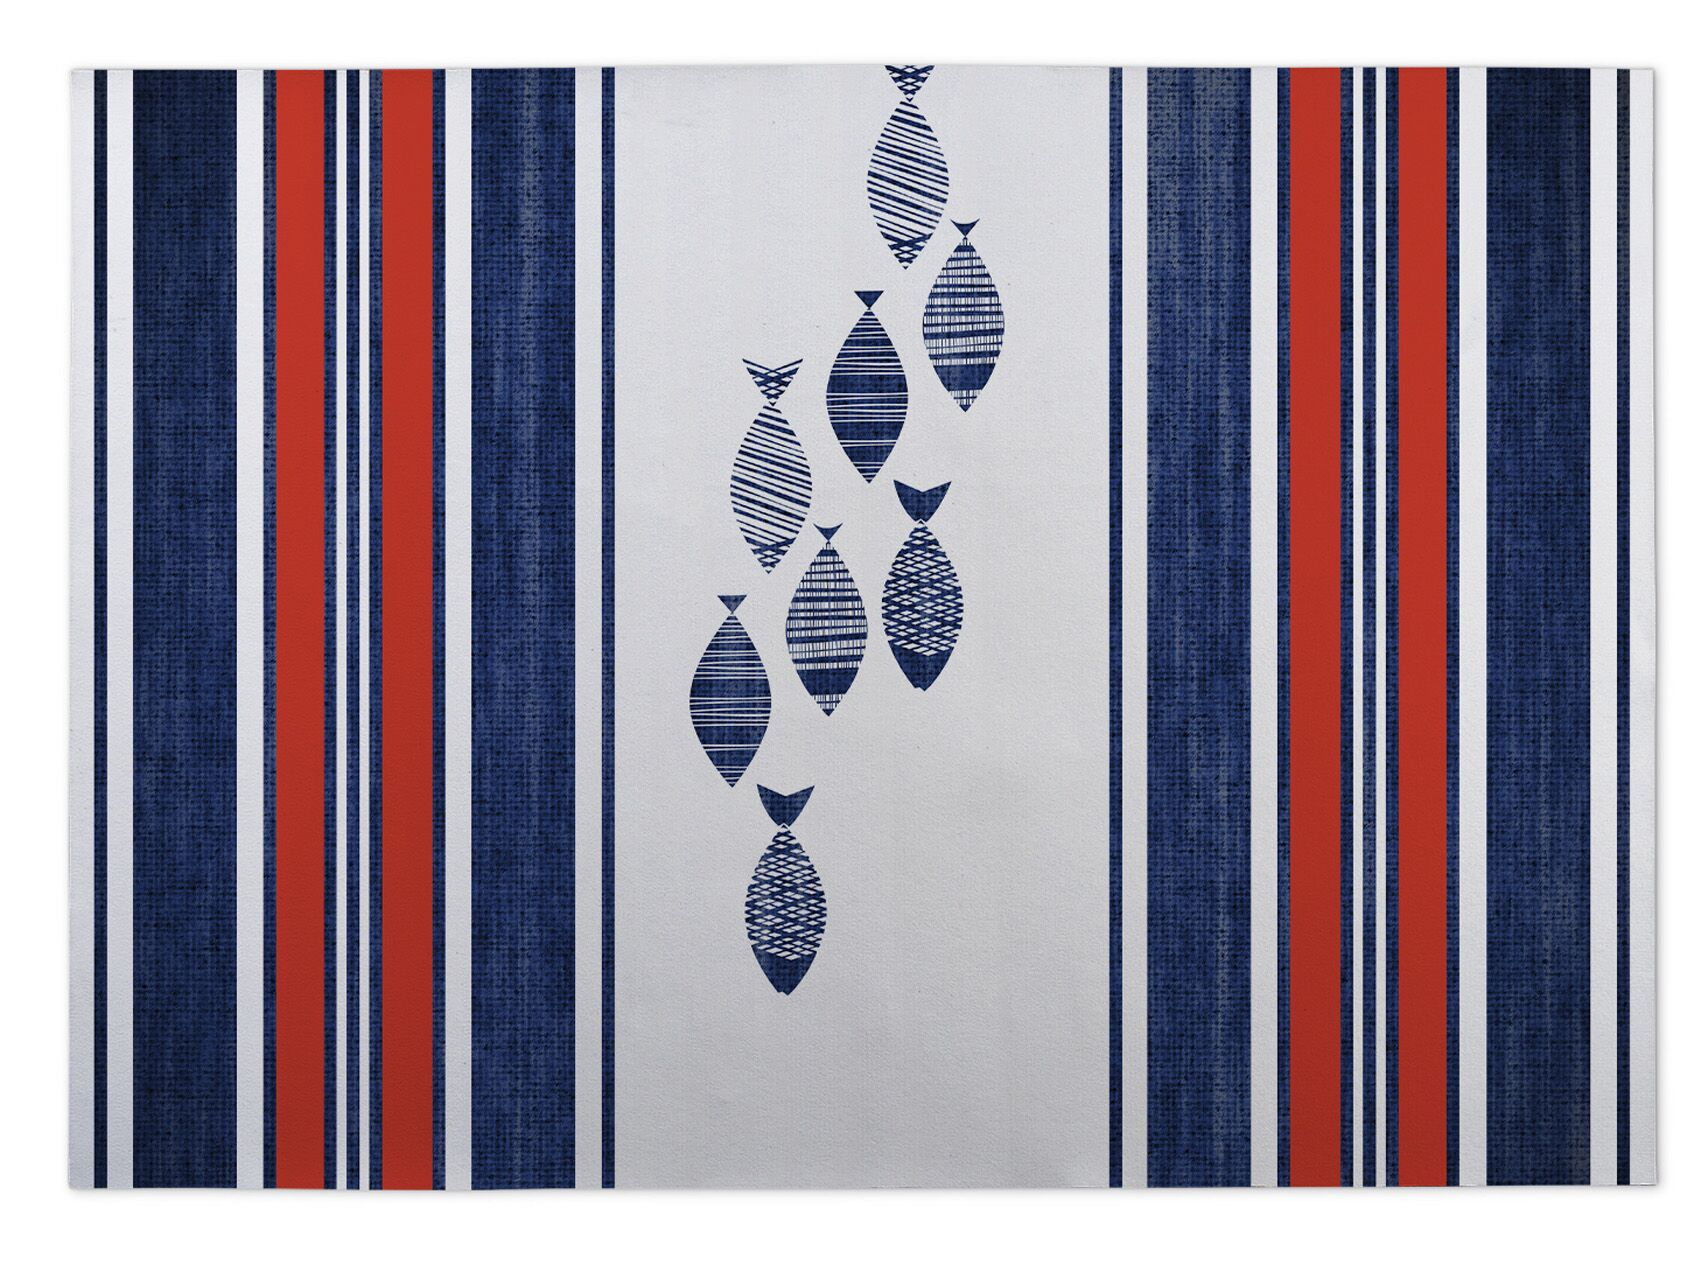 Concord Blue/Red Indoor/Outdoor Area Rug Size: Rectangle 4' x 5'